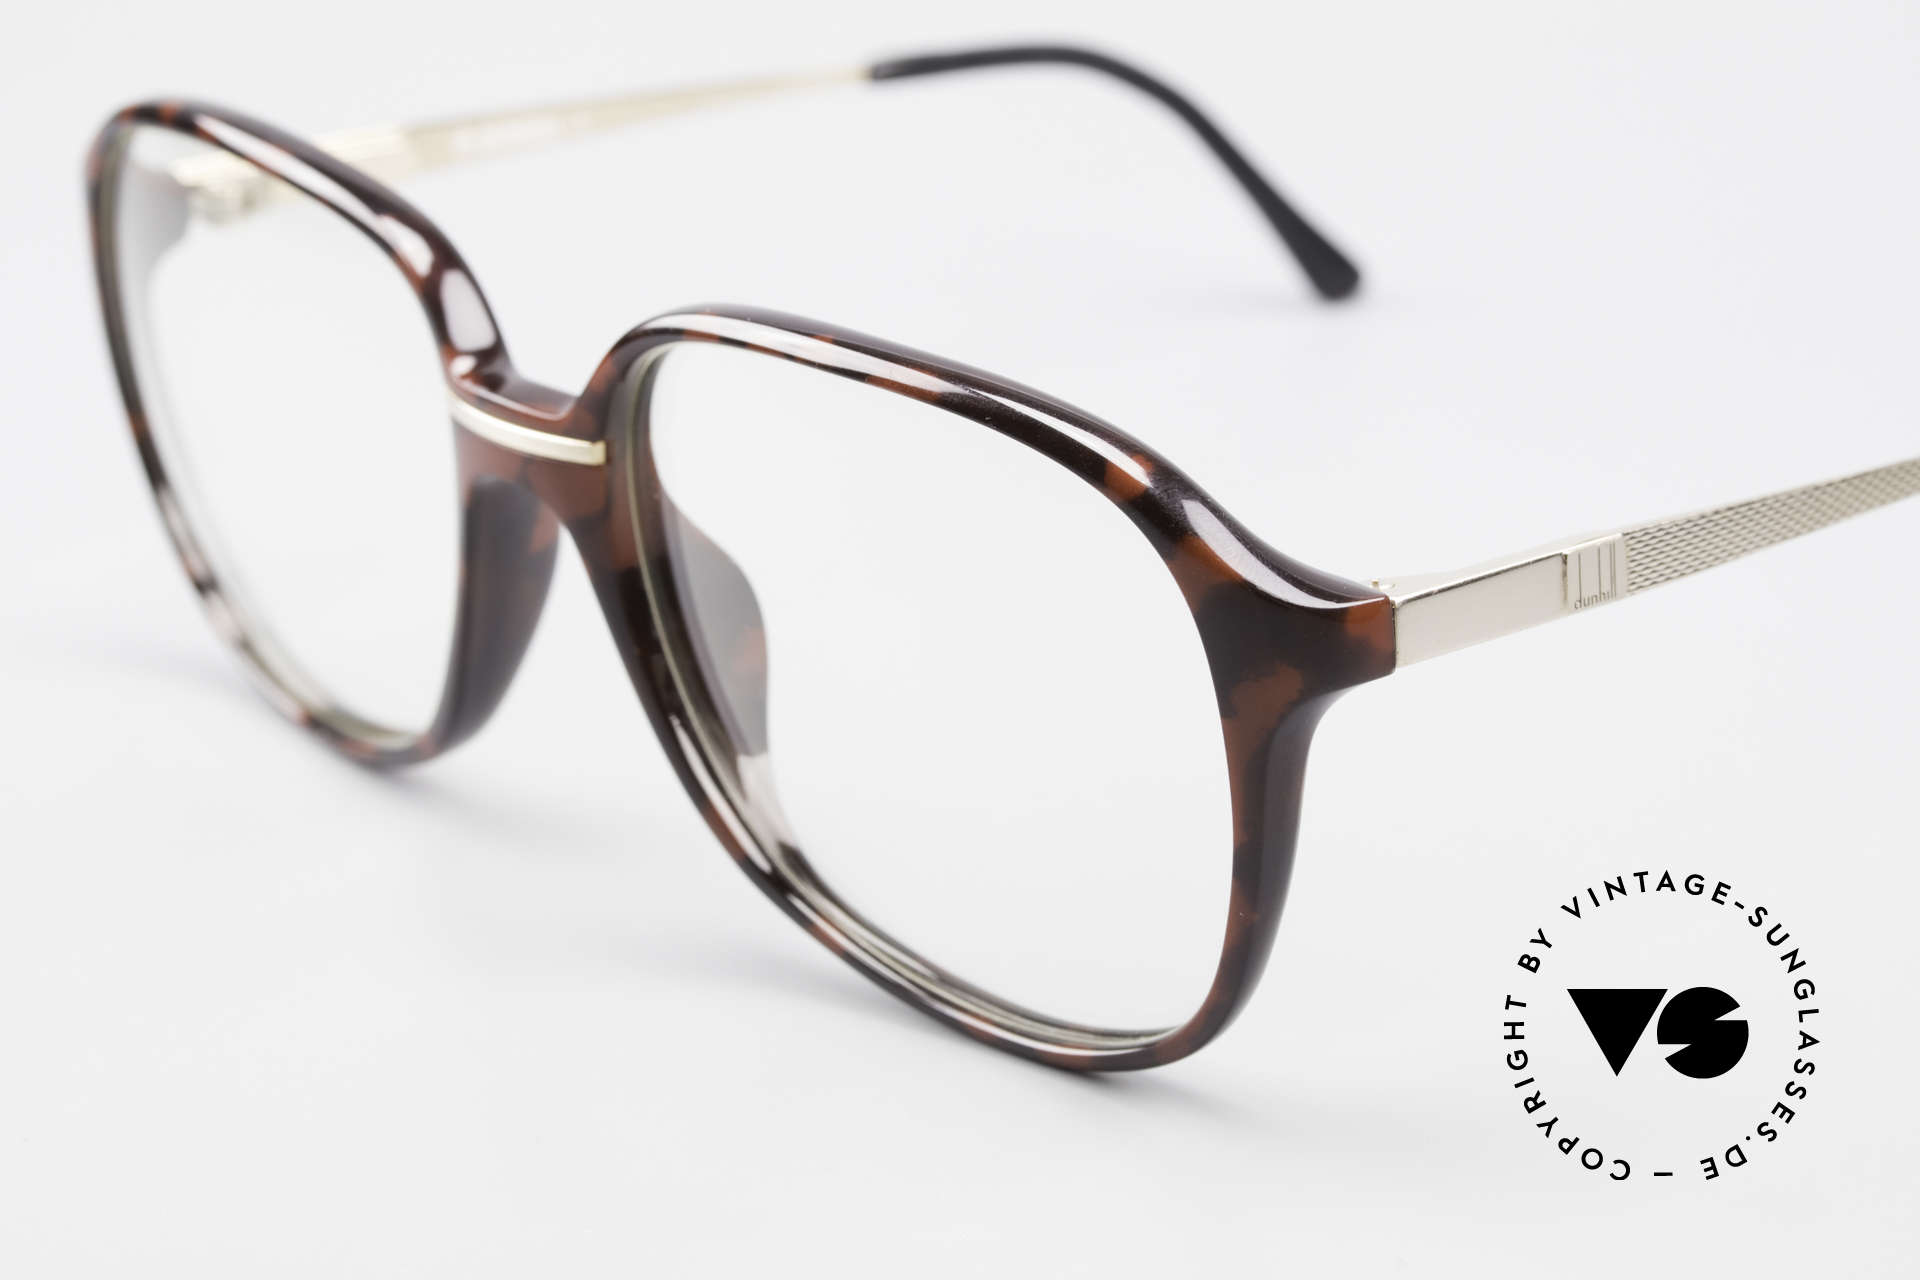 Dunhill 6137 90's Vintage Optyl Eyeglasses, gold-plated Barley temples & flexible spring hinges, Made for Men